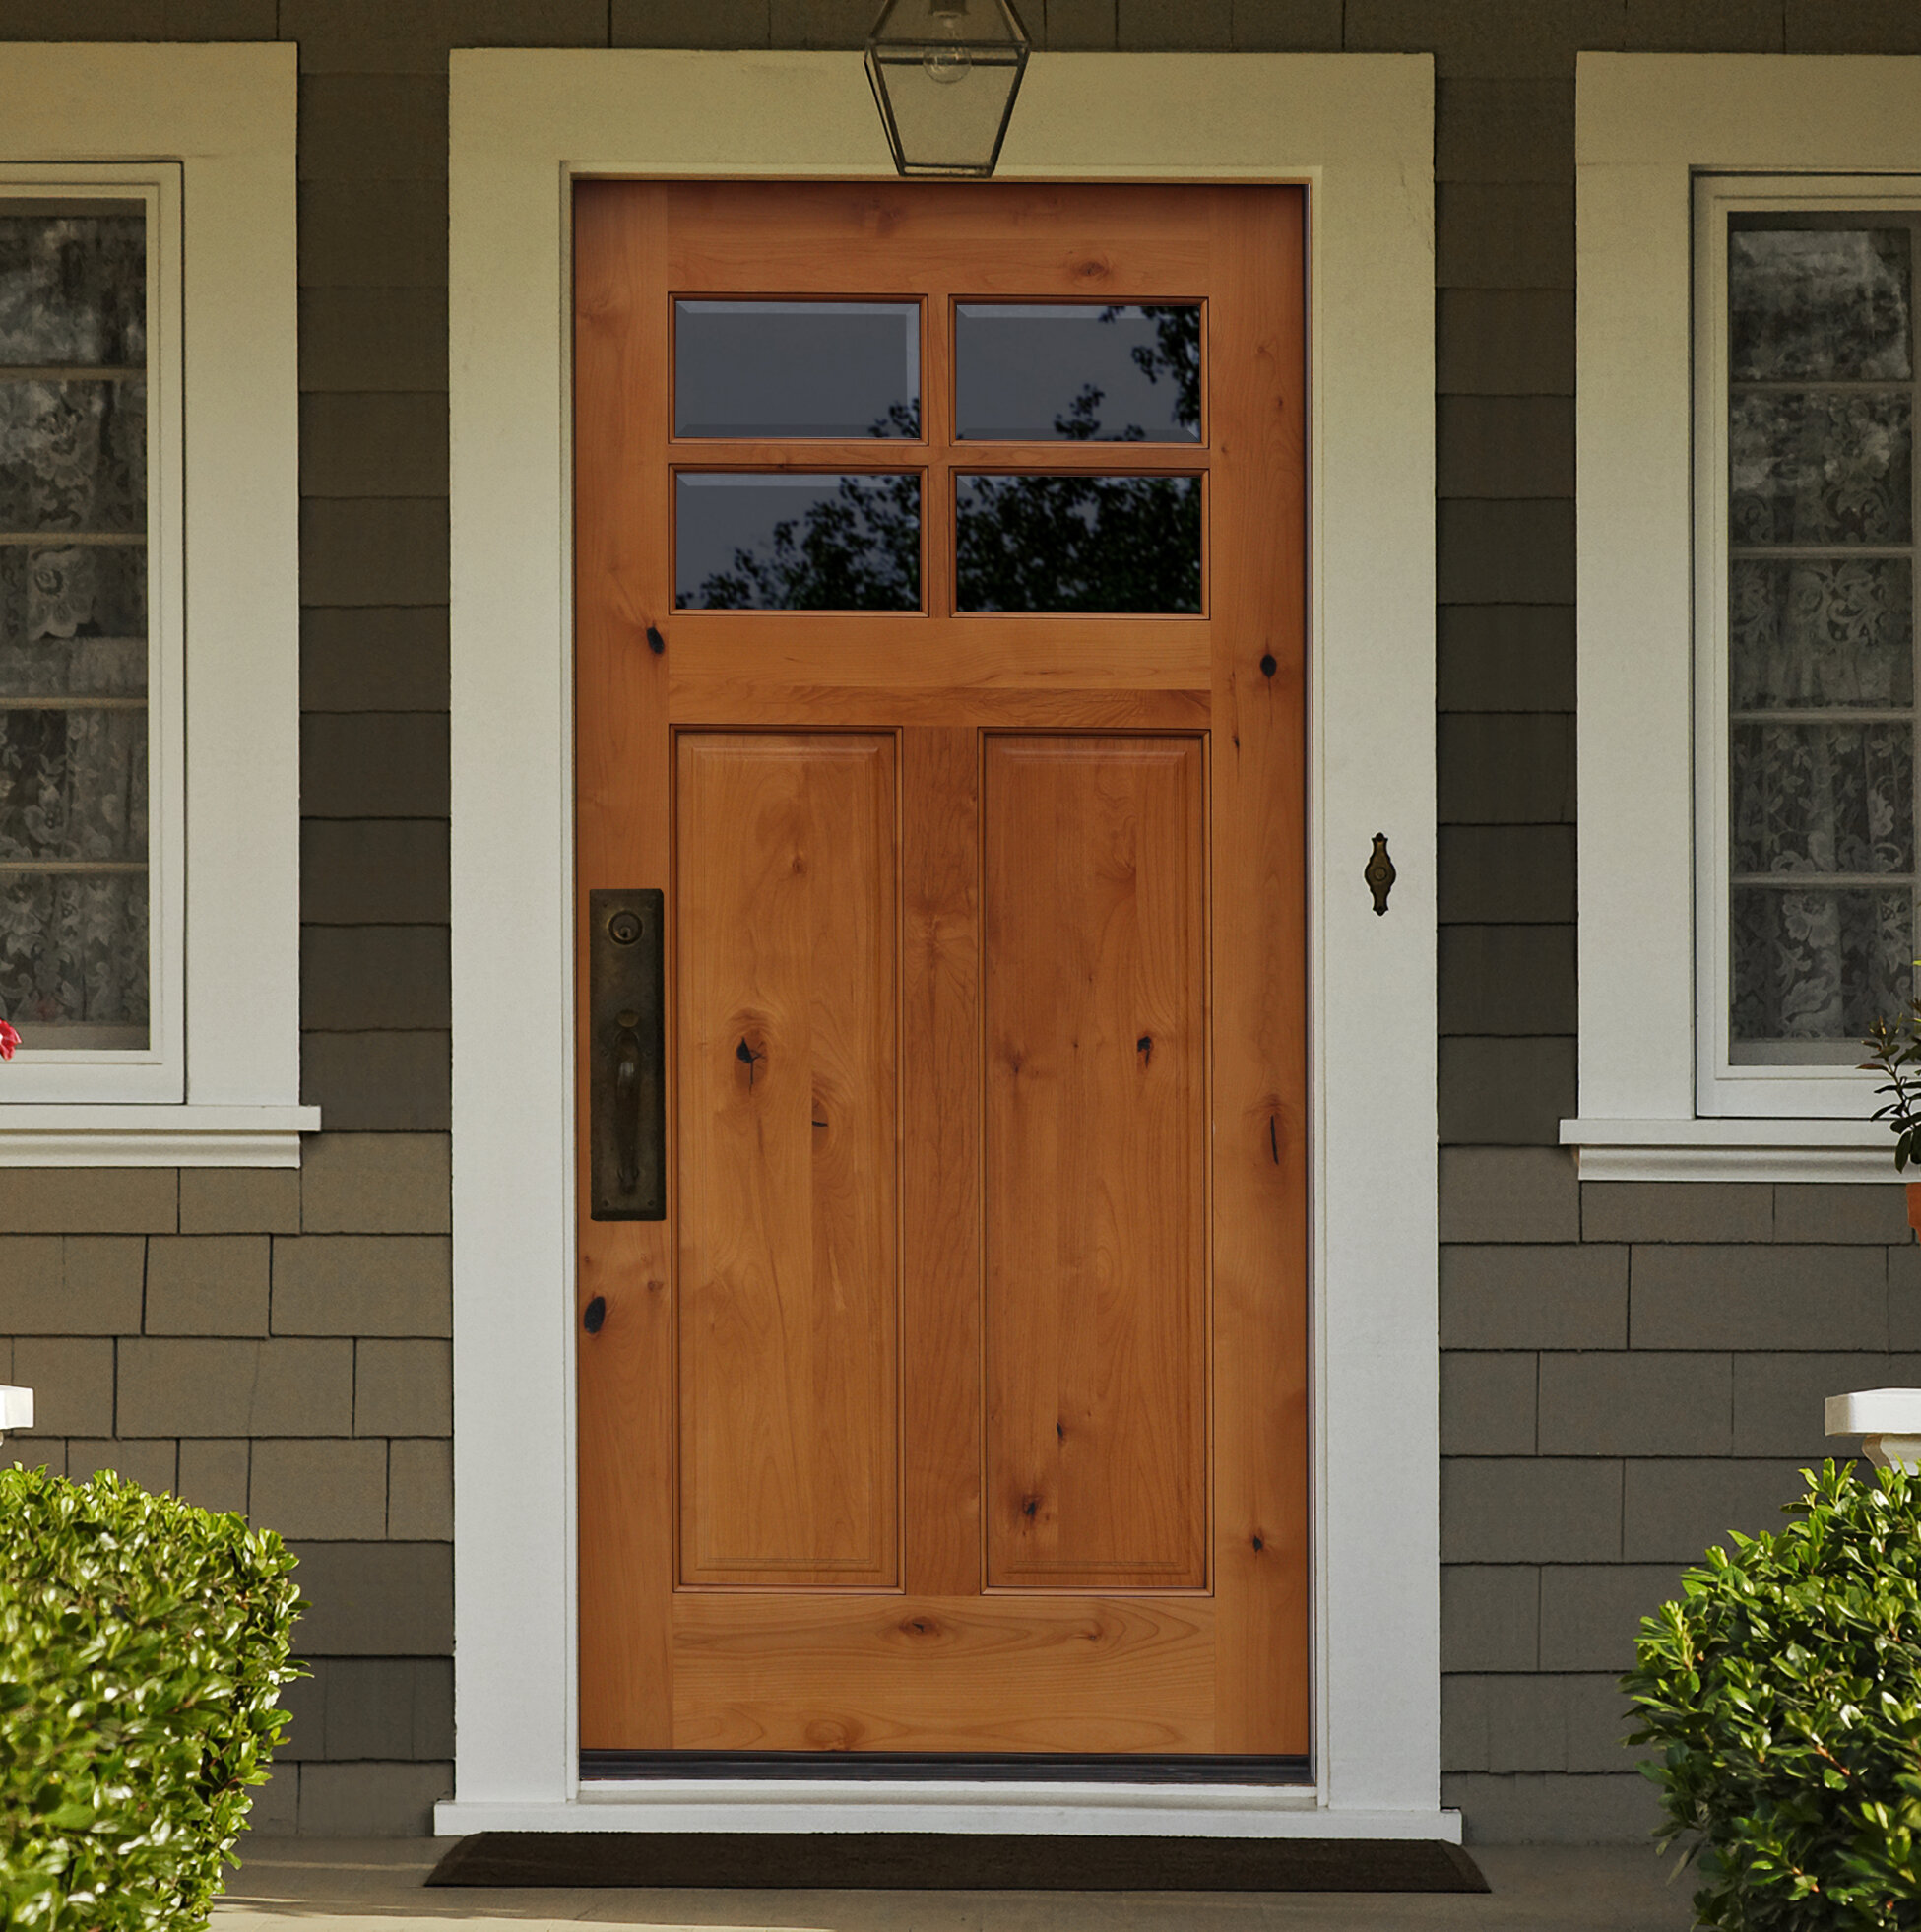 Wayfair Creative Entryways Shaker Craftsman 4 Lite Beveled Ready To Install Wood Prehung Front Entry Door